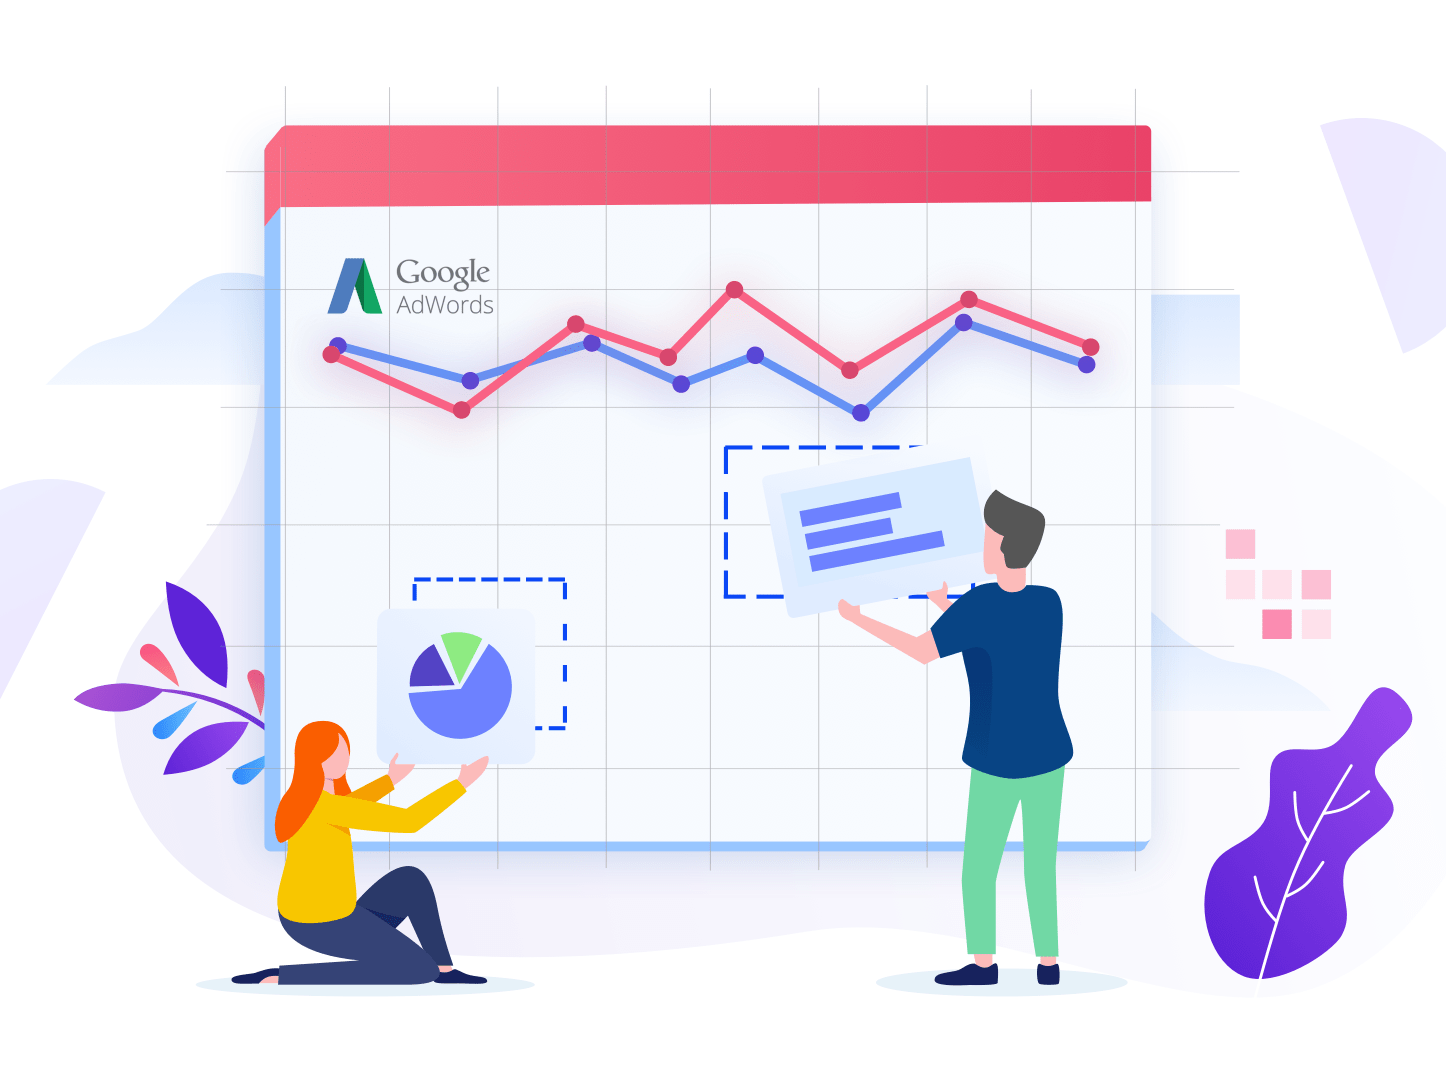 Google Adwords. Контекстная реклама